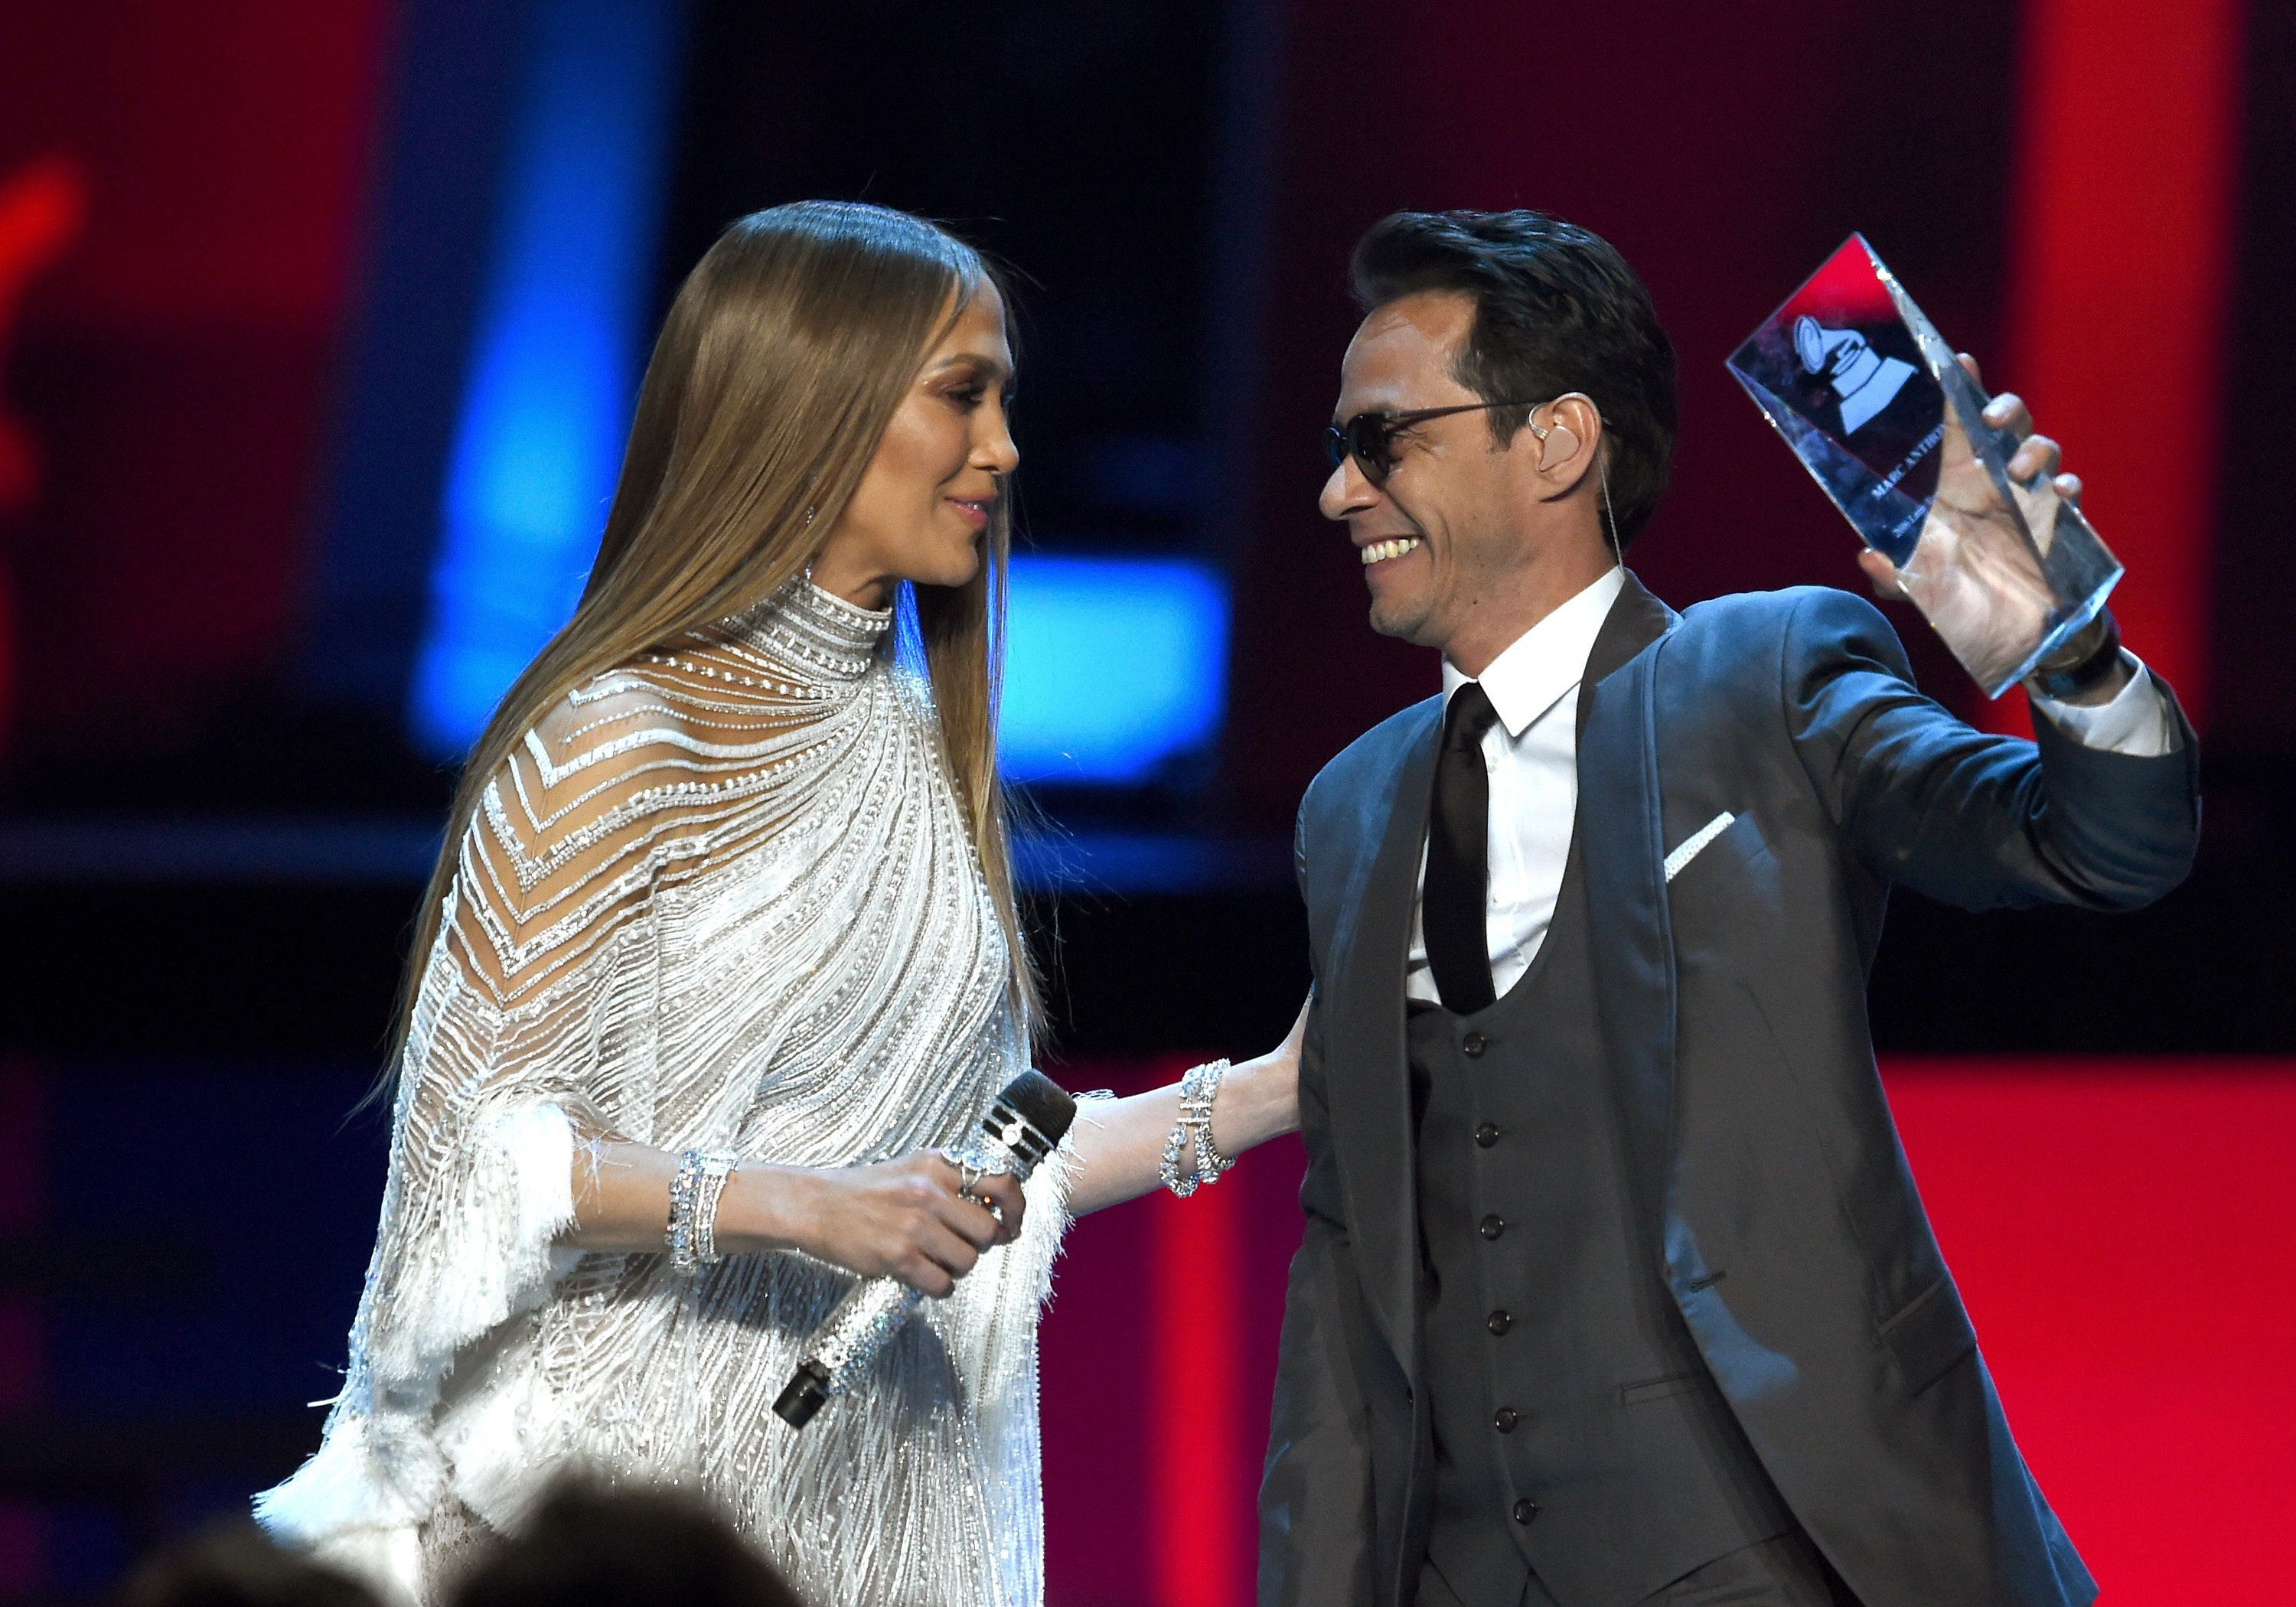 LAS VEGAS, NV - NOVEMBER 17:  Singer/actress Jennifer Lopez and Person of the Year award honoree Marc Anthony speak onstage during The 17th Annual Latin Grammy Awards at T-Mobile Arena on November 17, 2016 in Las Vegas, Nevada.  (Photo by Kevin Winter/WireImage)